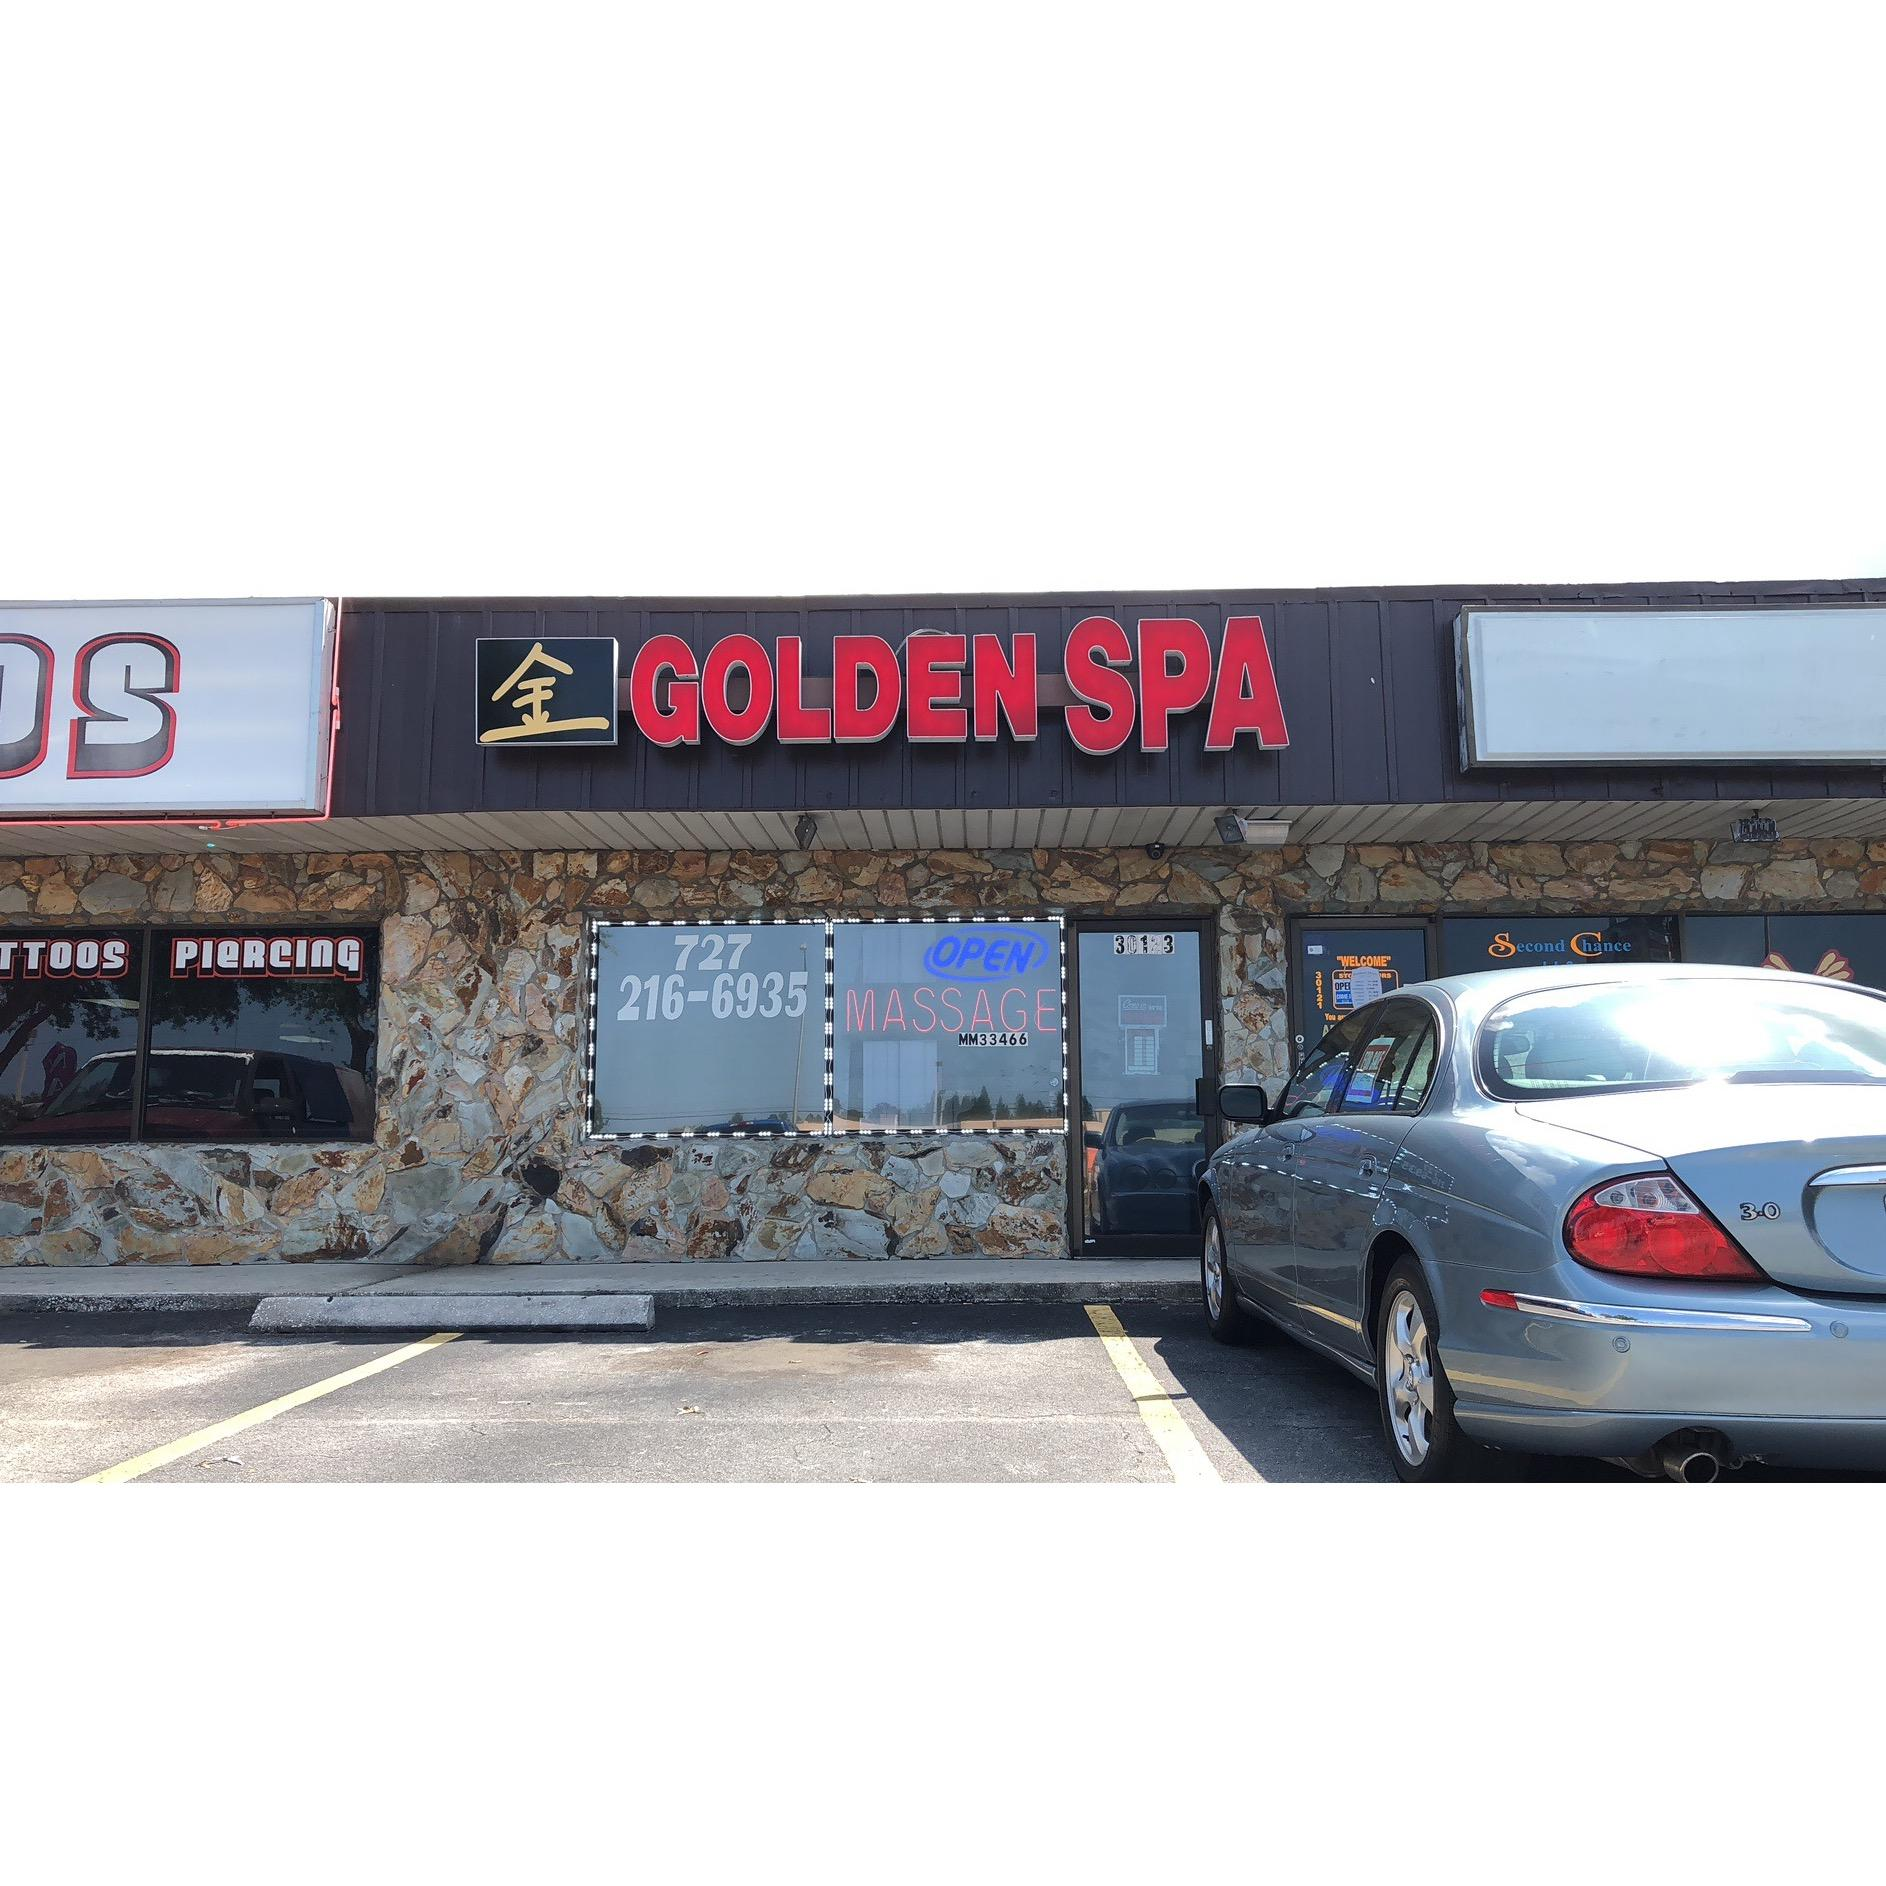 Golden Spa Asian Massage - Clearwater & Tampa - Clearwater, FL - Massage Therapists